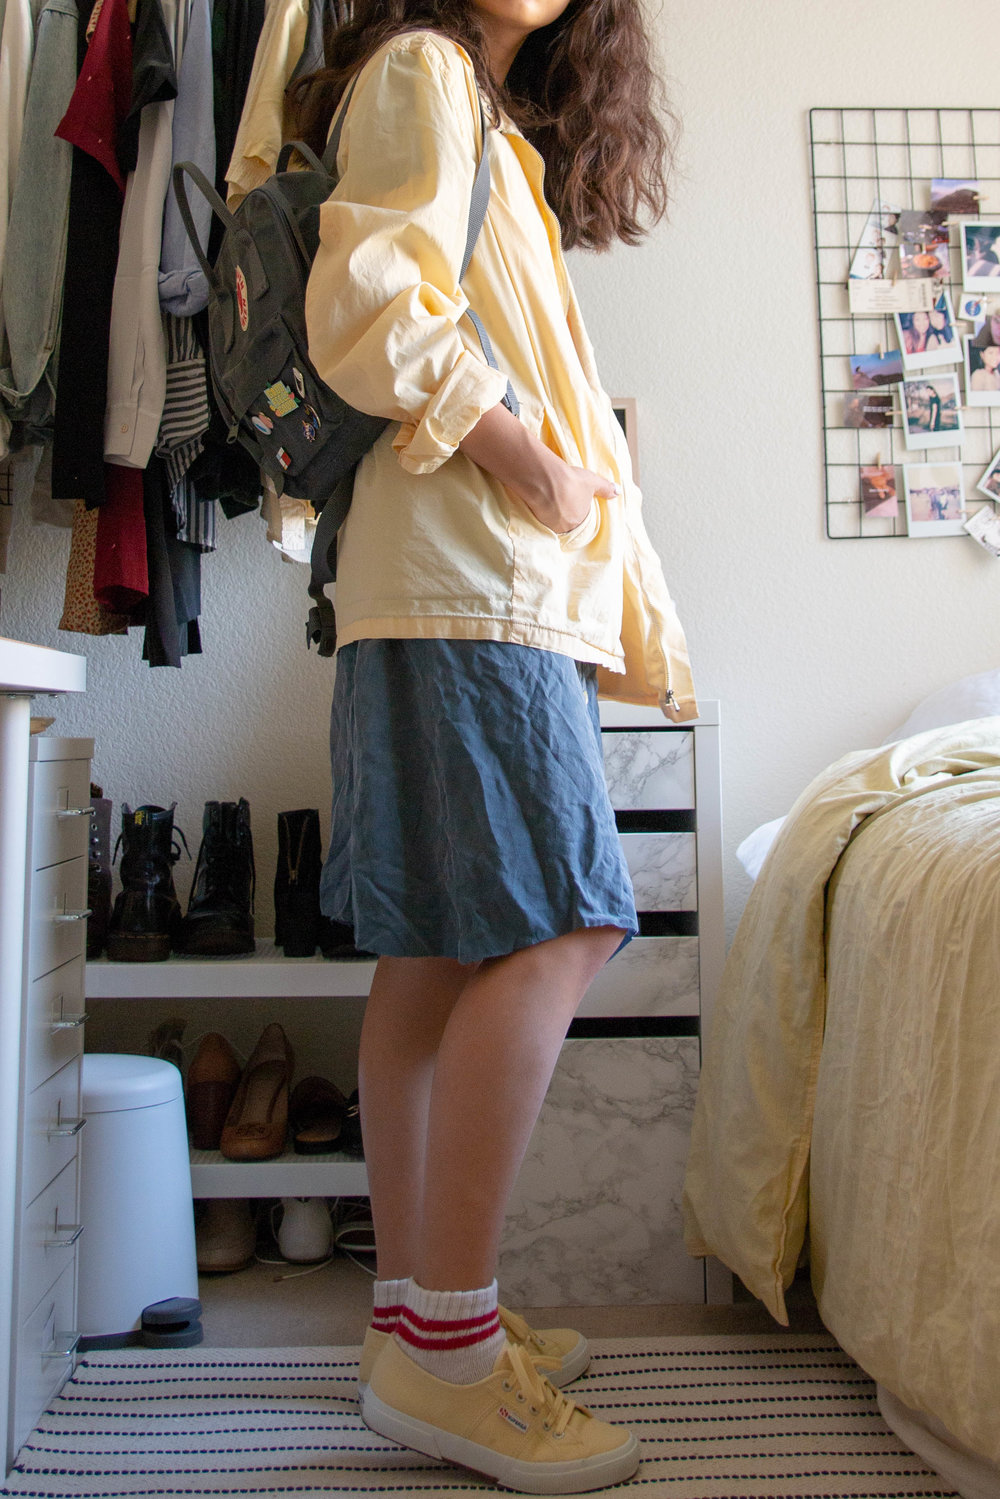 the midi dress - midi dress - vintagewindbreaker - vintagesocks - forever21 (old)sneakers - supergabag - fjallraven kanken mini